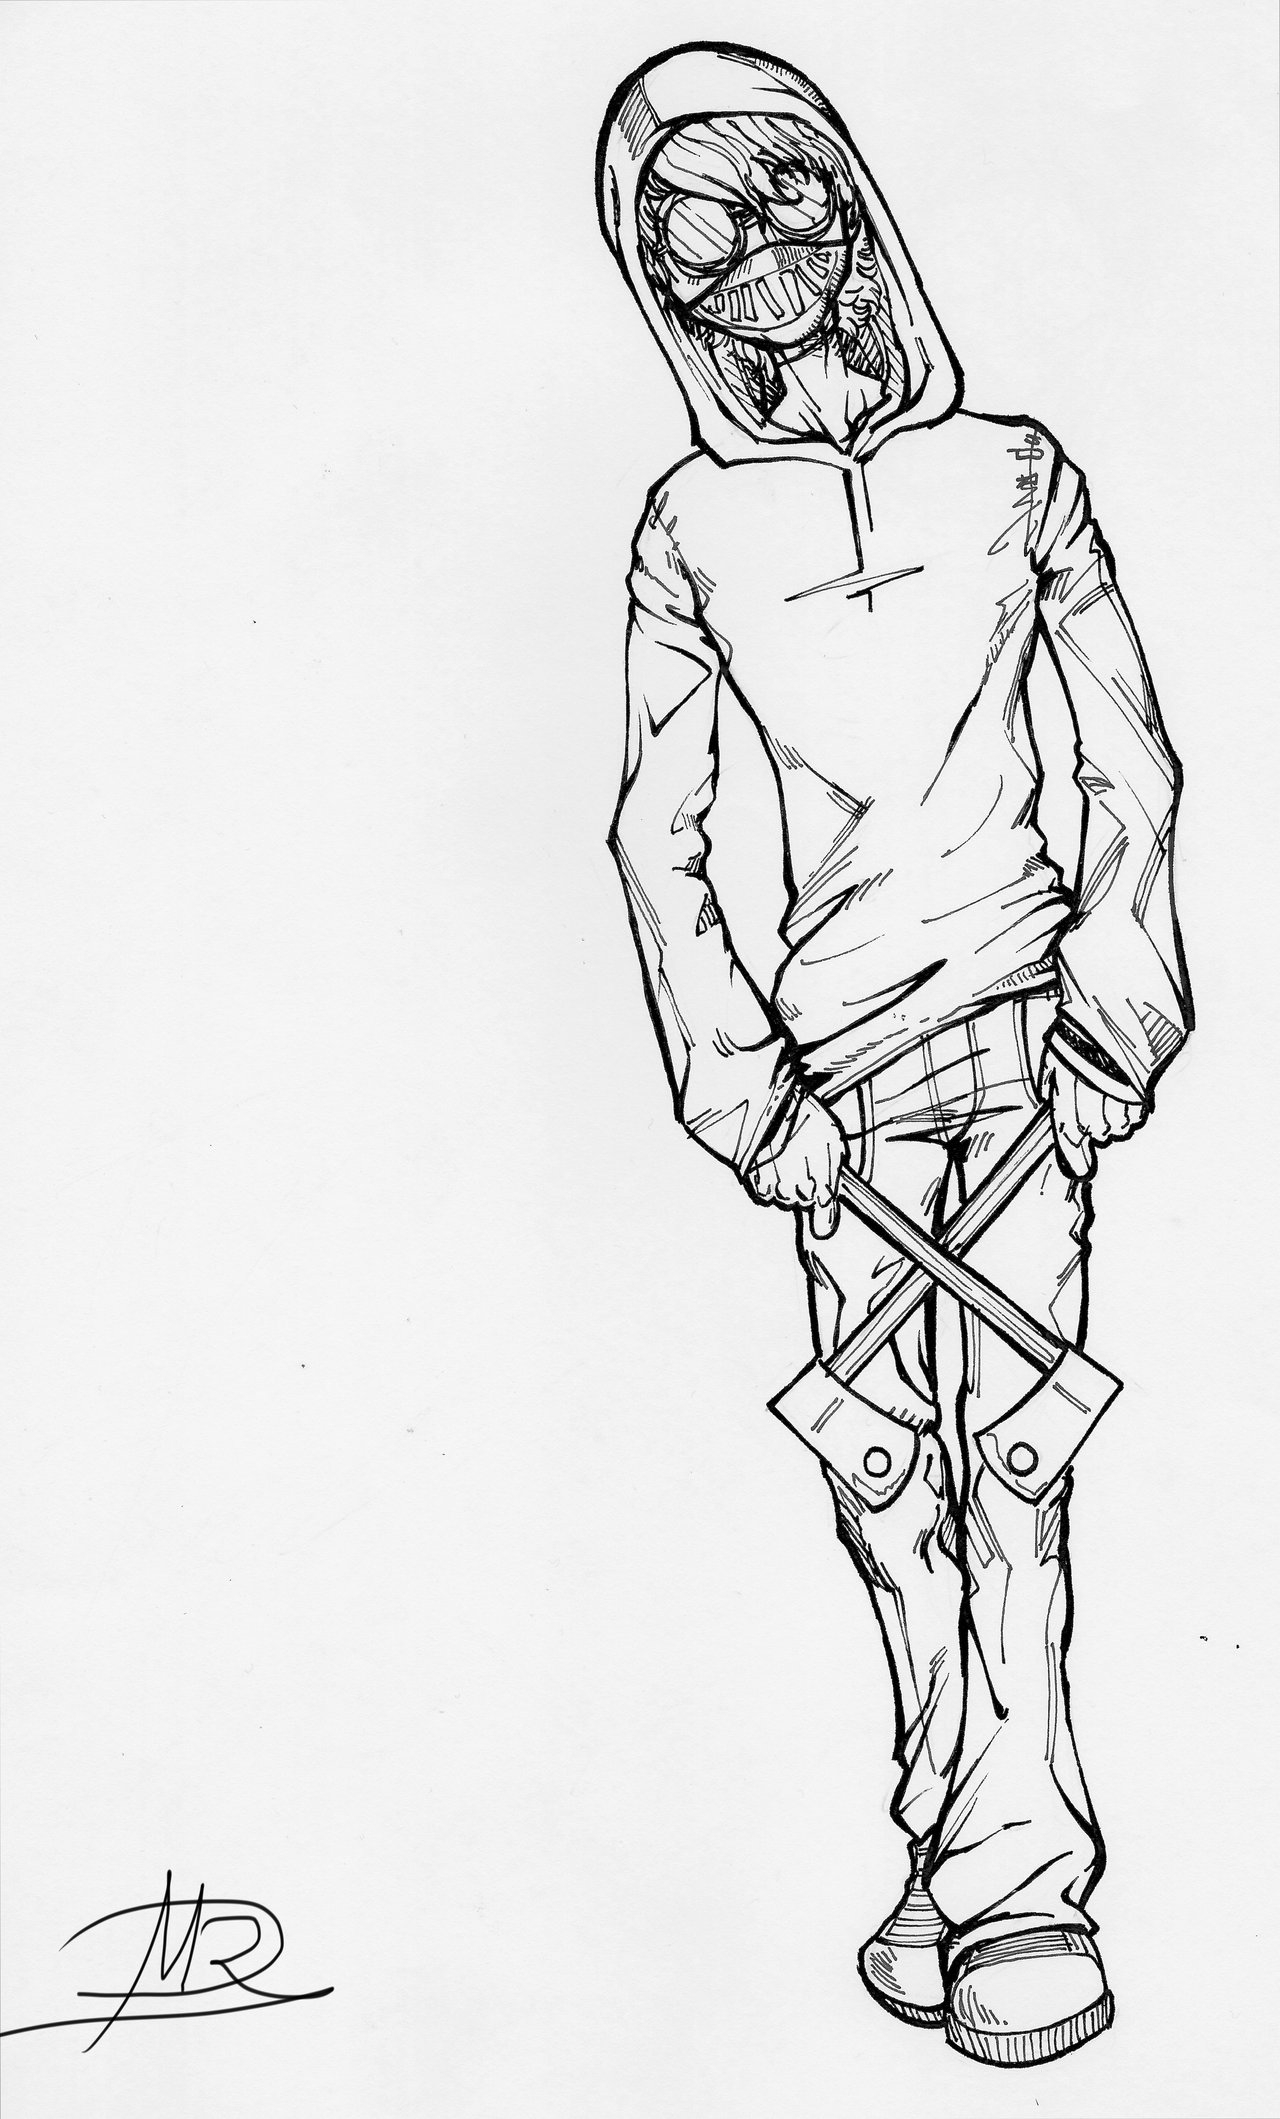 Creepypasta Coloring Pages - Ticcy toby Creepypasta Fanart by Mard0018 On Deviantart